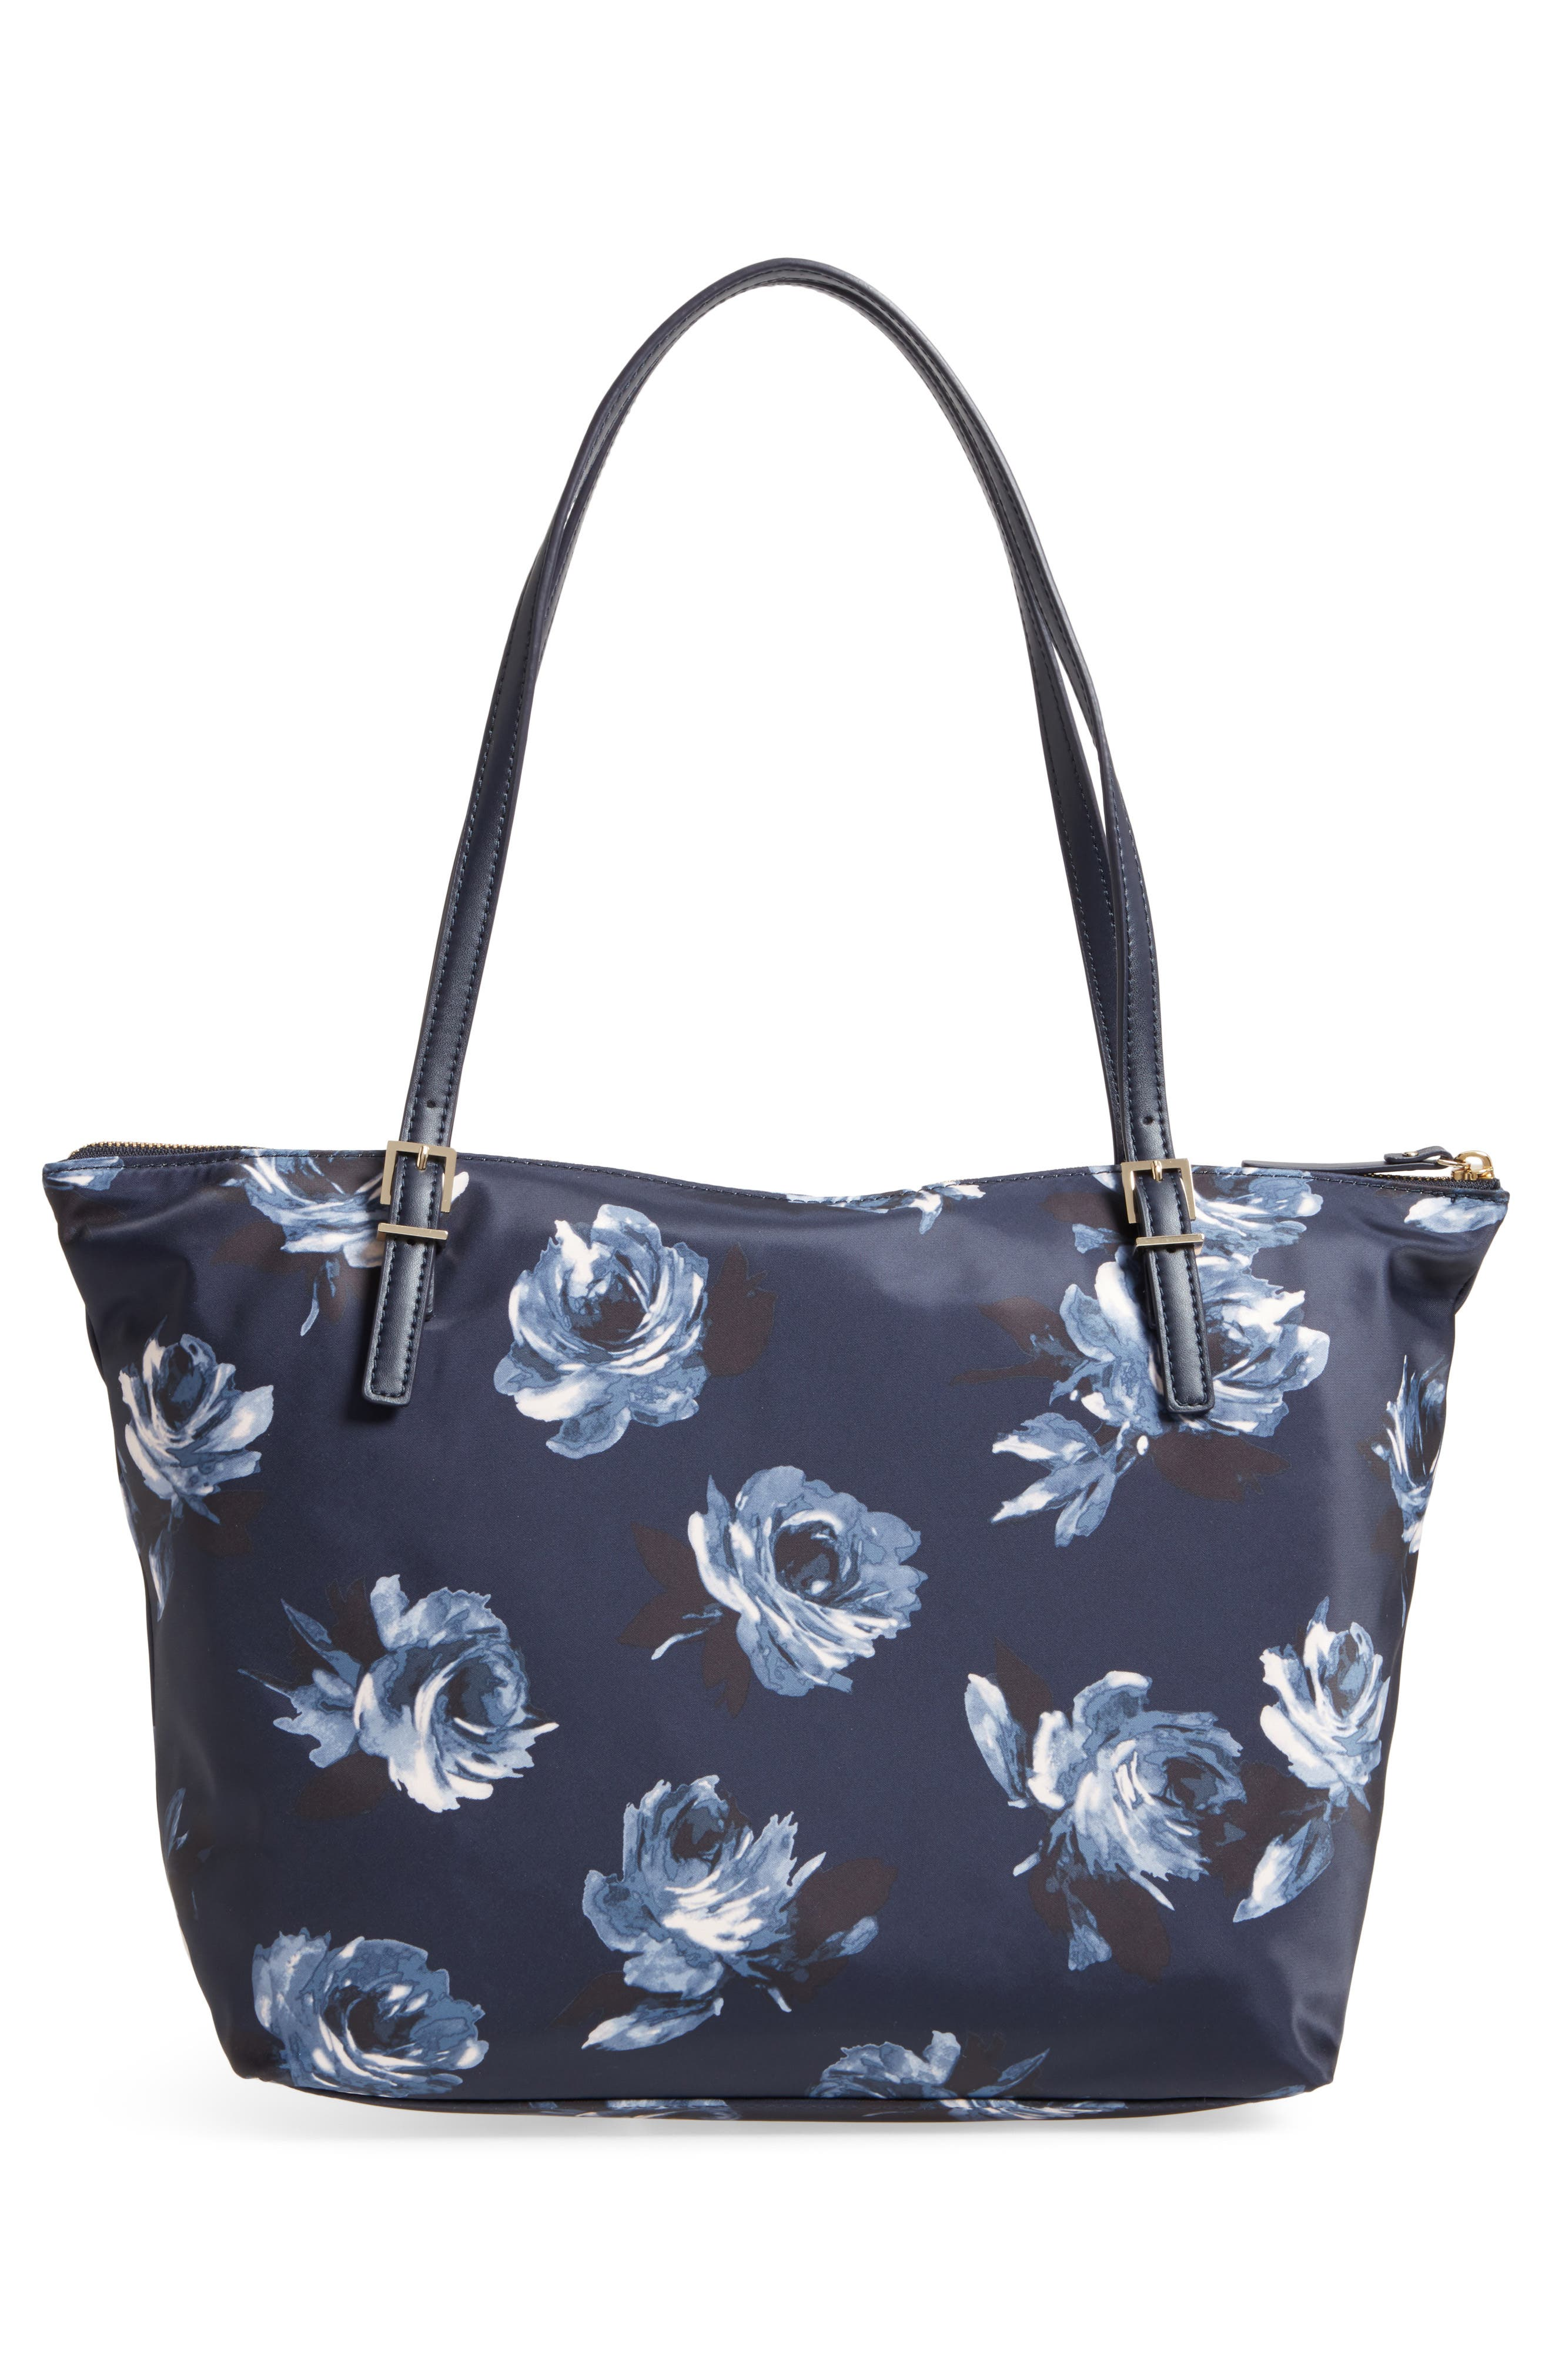 watson lane - night rose maya tote,                             Alternate thumbnail 3, color,                             485